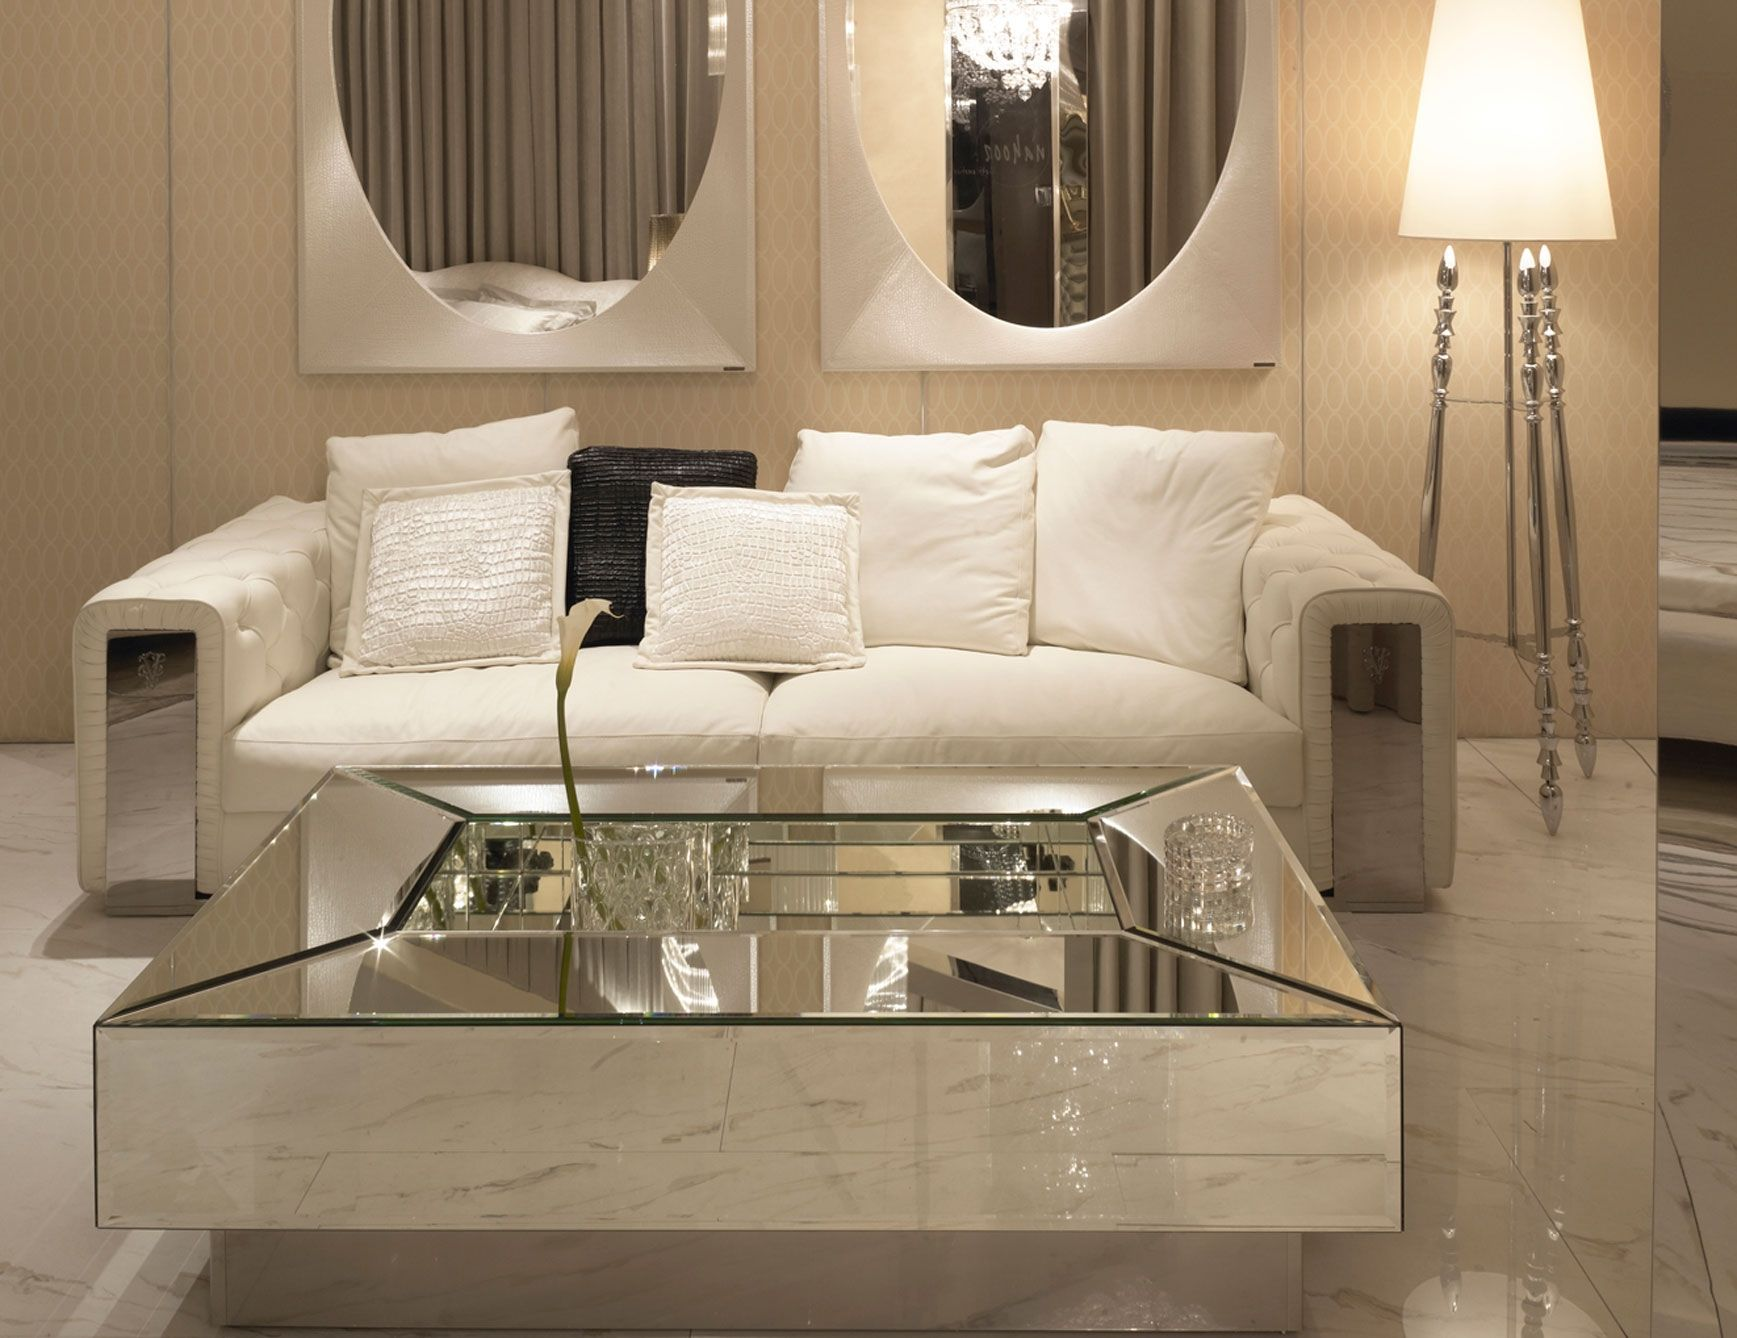 Mesmerizing mirrored coffee table with glass and wood for Modern living room bench